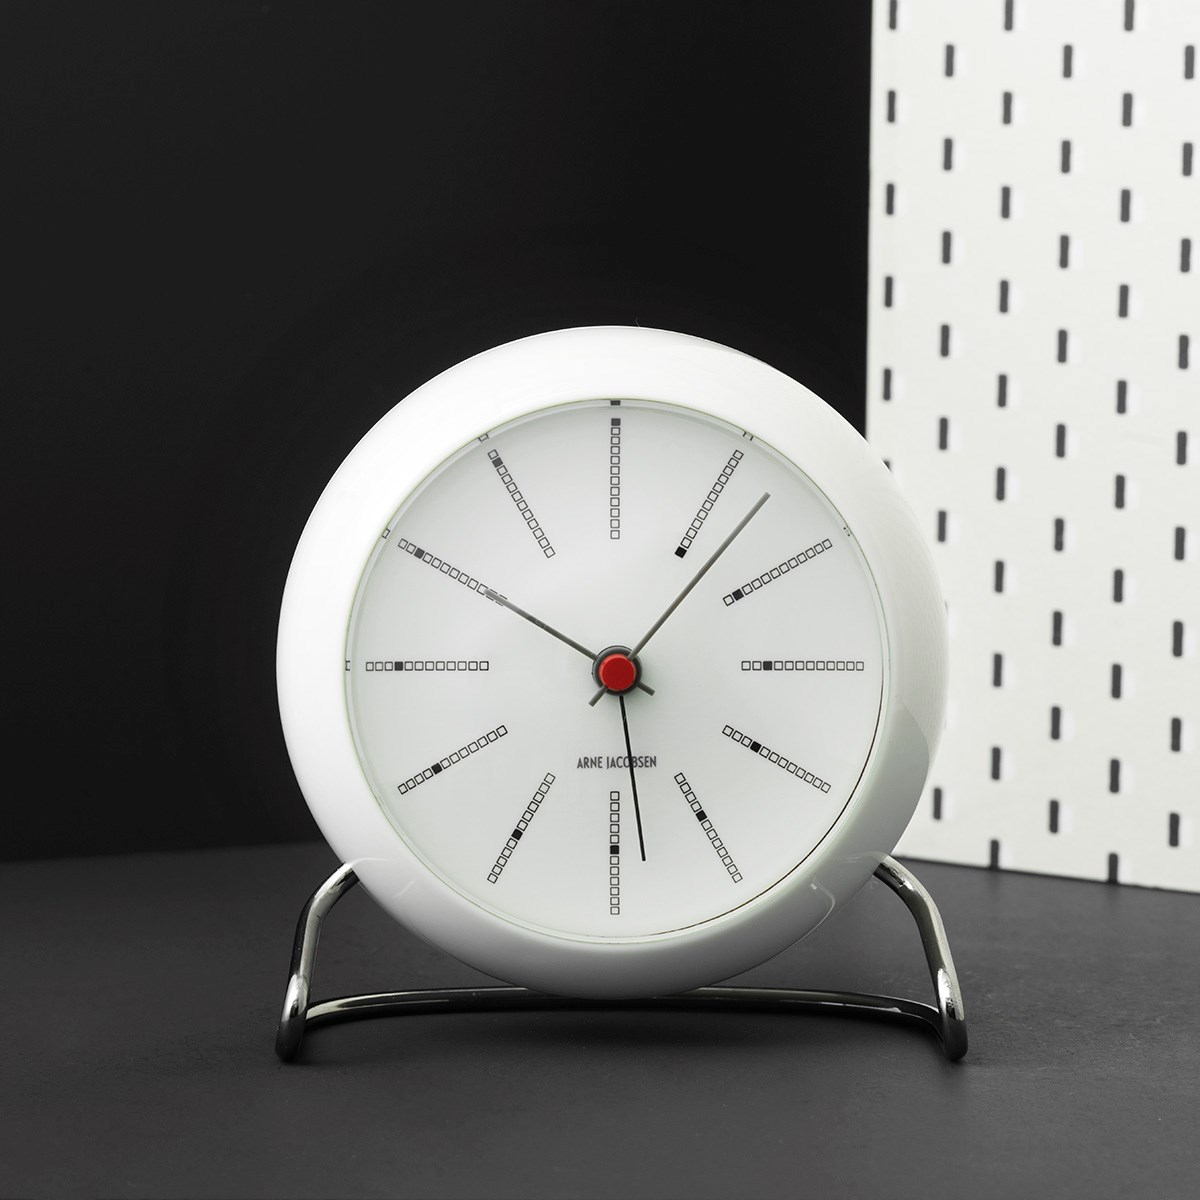 Arne Jacobsen Wall Table Clock